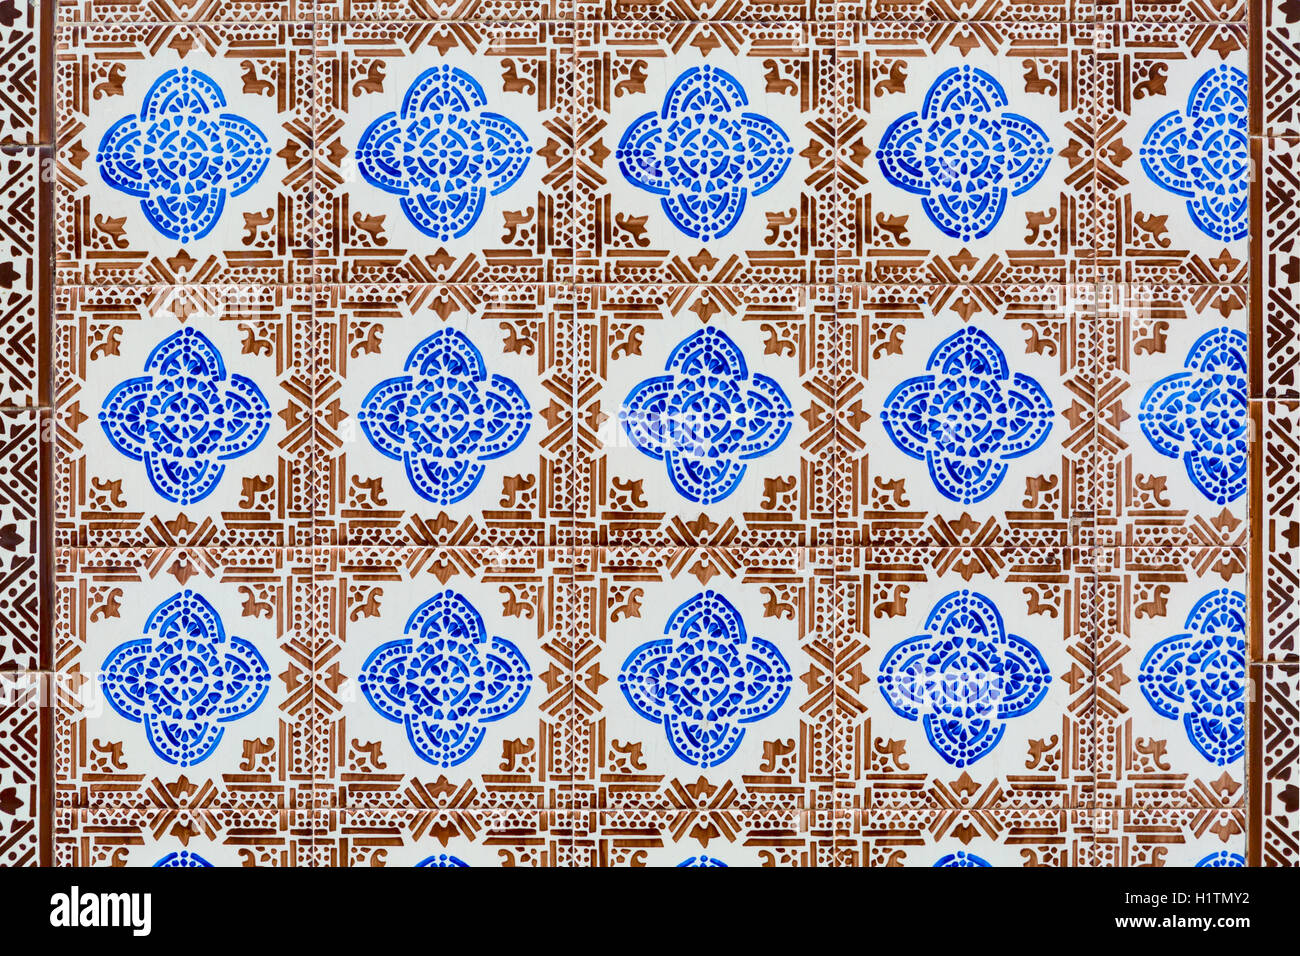 old brown and blue colored azulejos - hand painted tiles from Lisbon - Stock Image